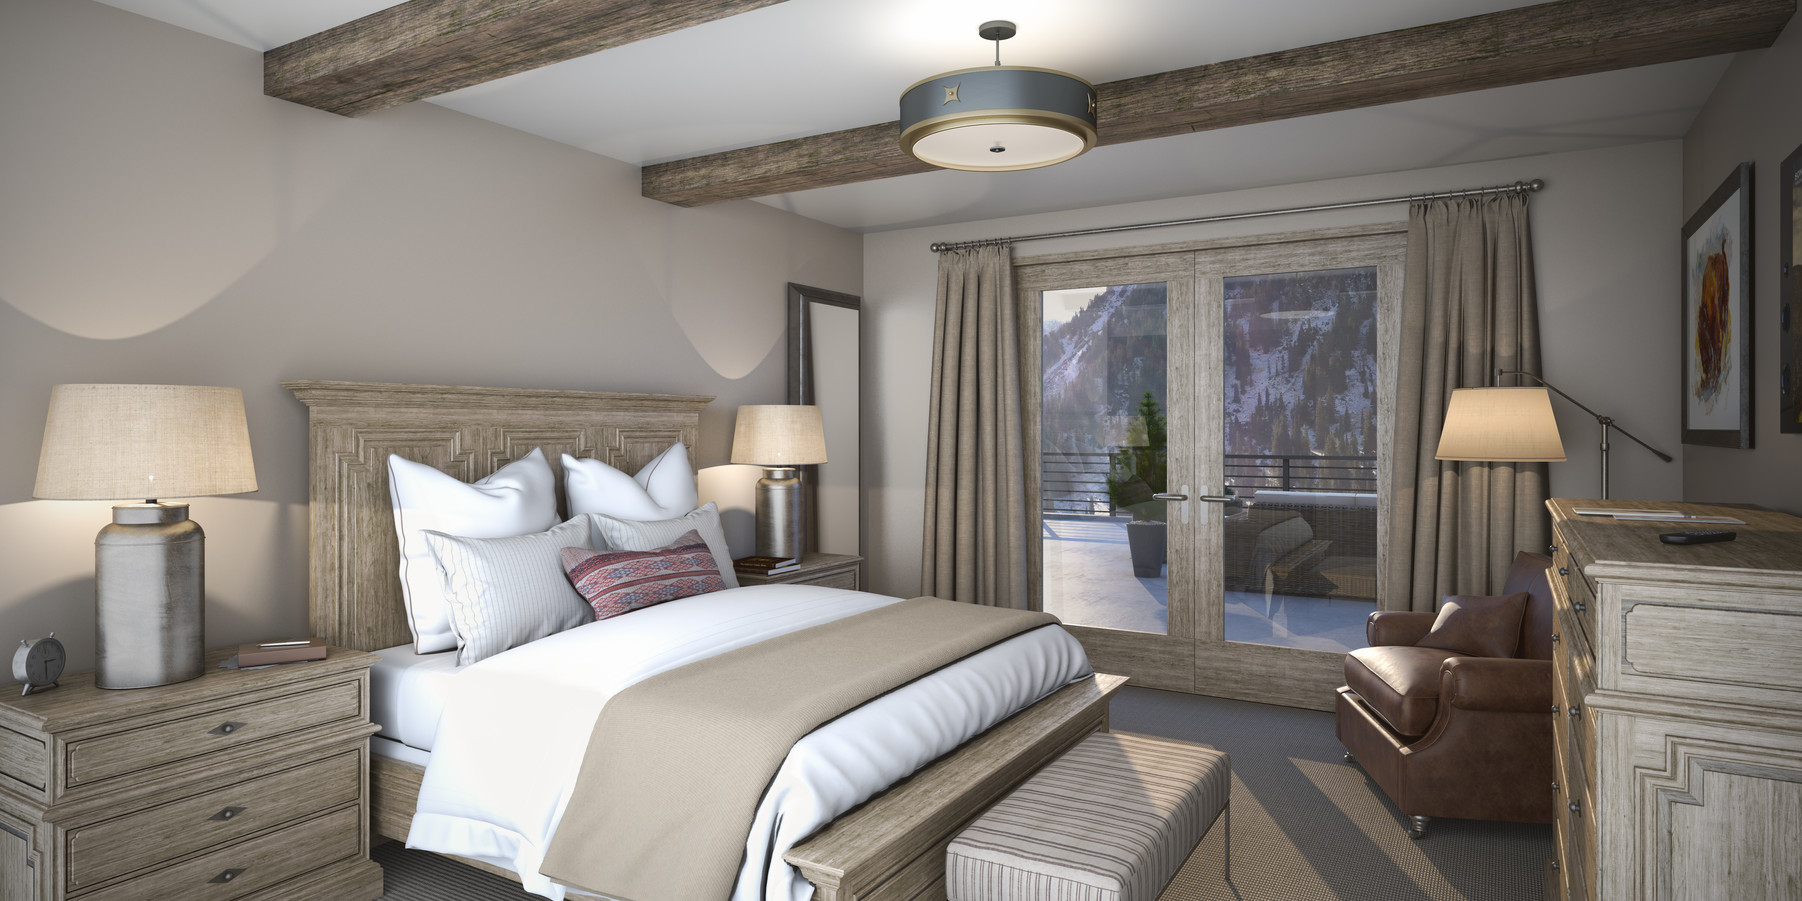 02.The Snowpine Lodge Guestroom